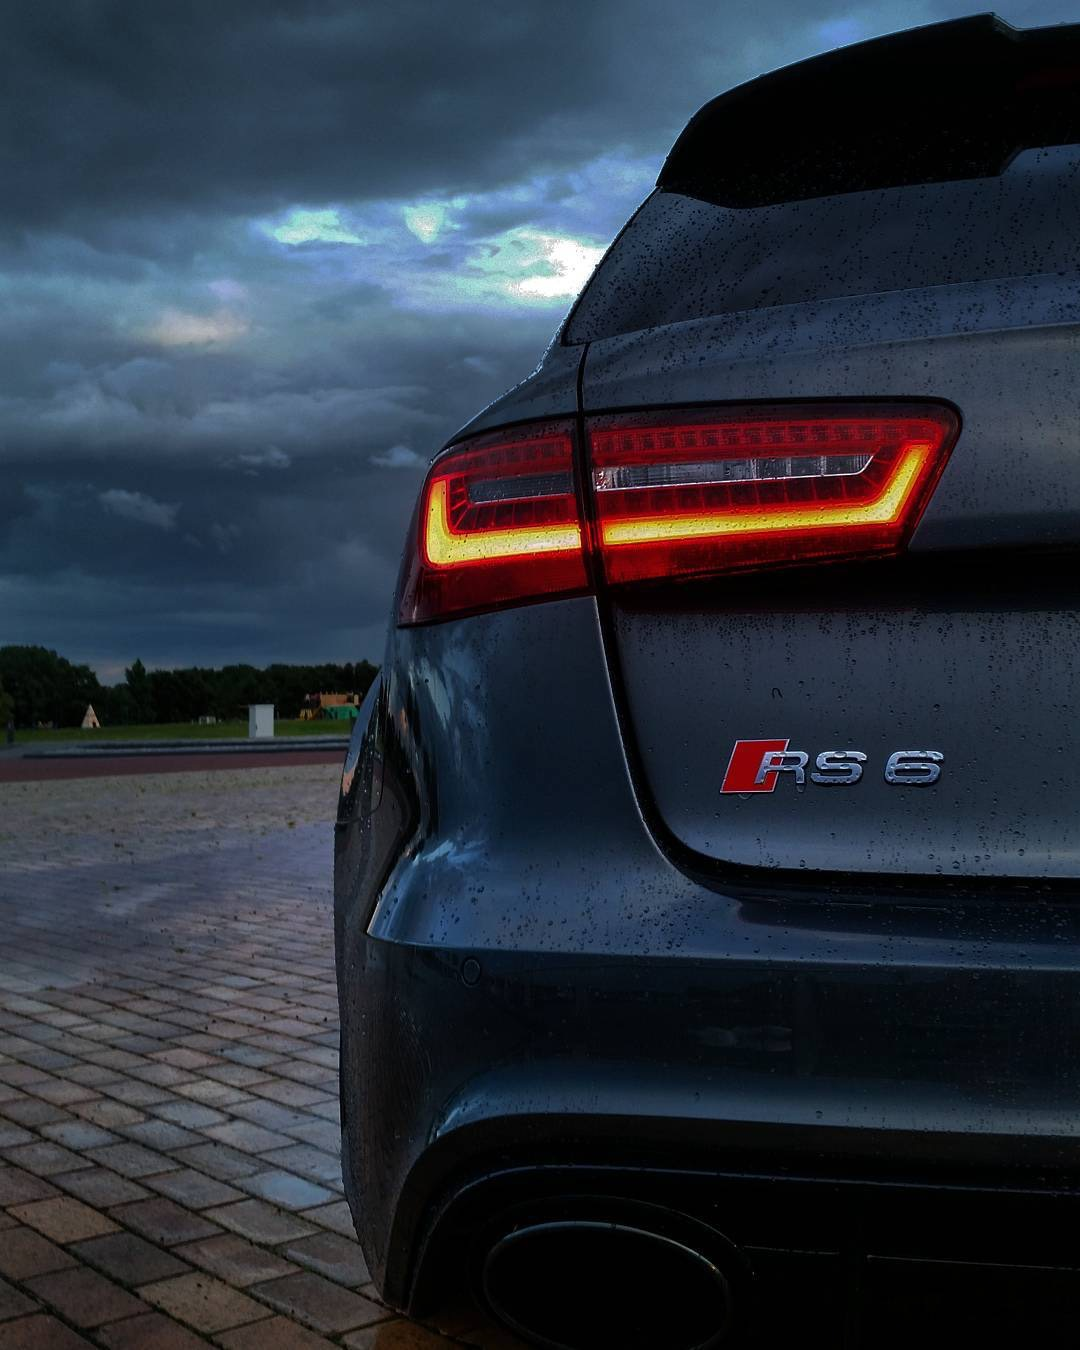 audi rs6 phone wallpaper.